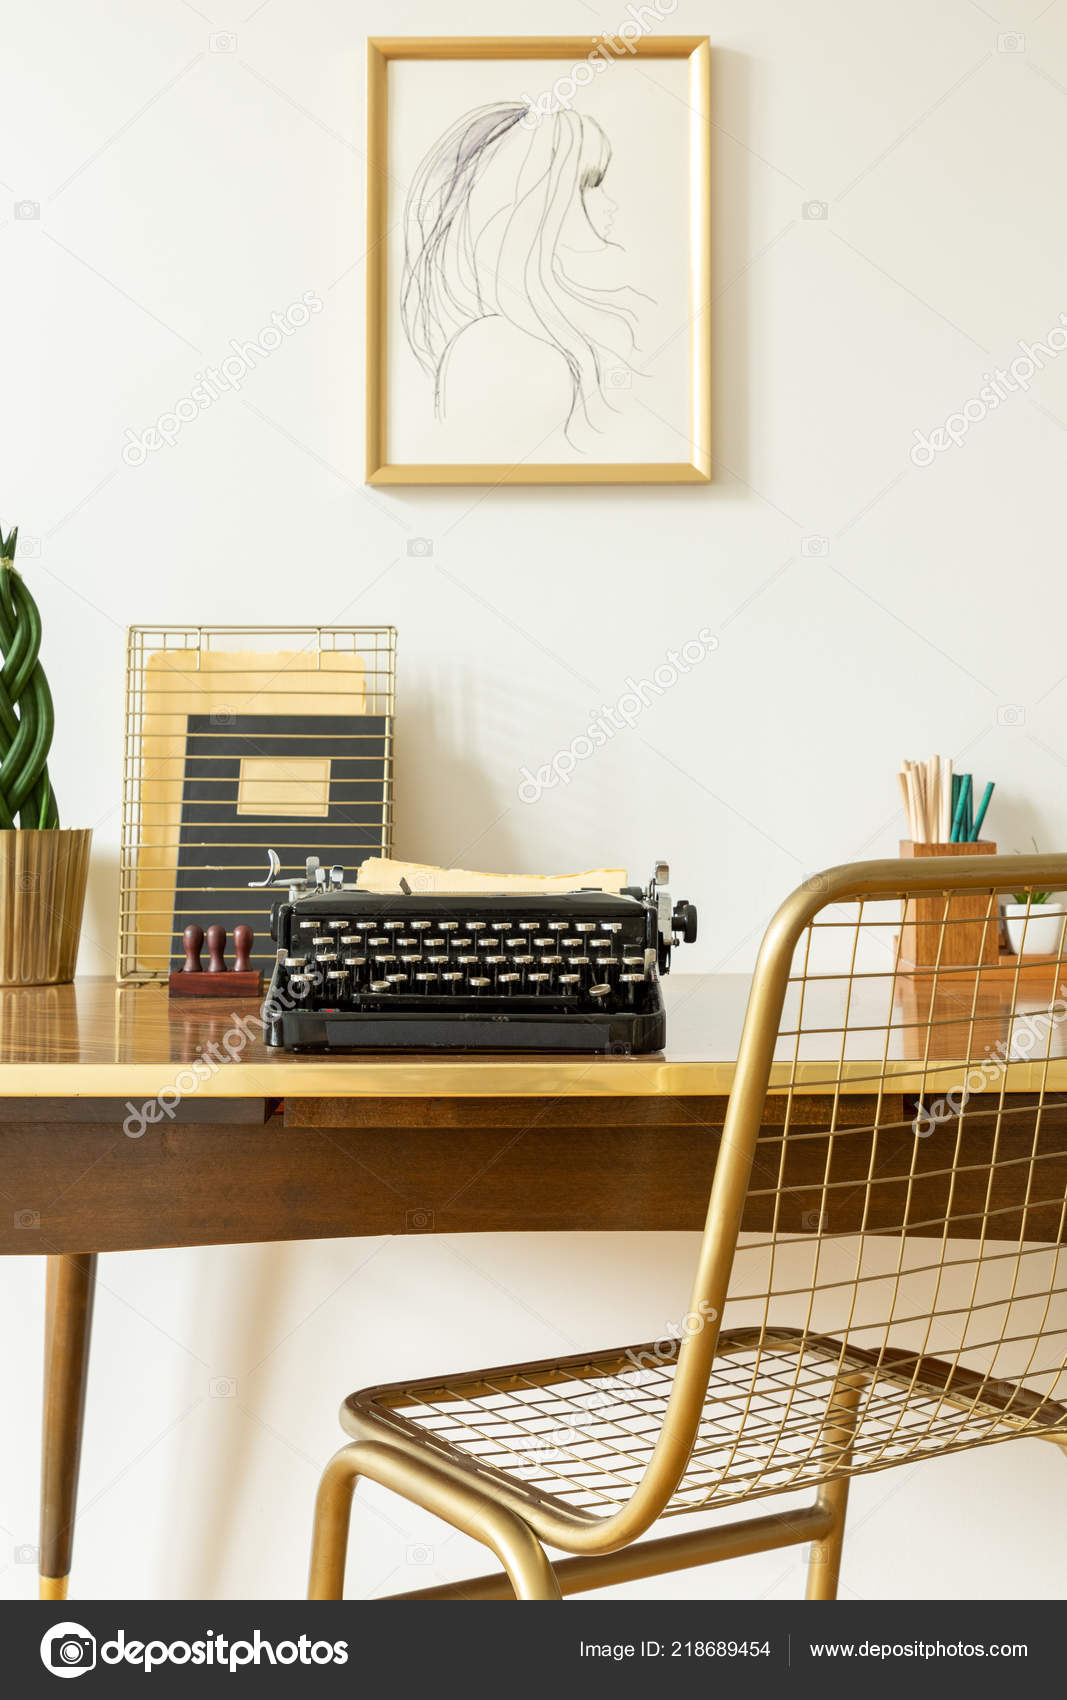 Industrial Golden Net Chair Wooden Desk Black Vintage Typewriter - Schreibtisch Organizer Gold